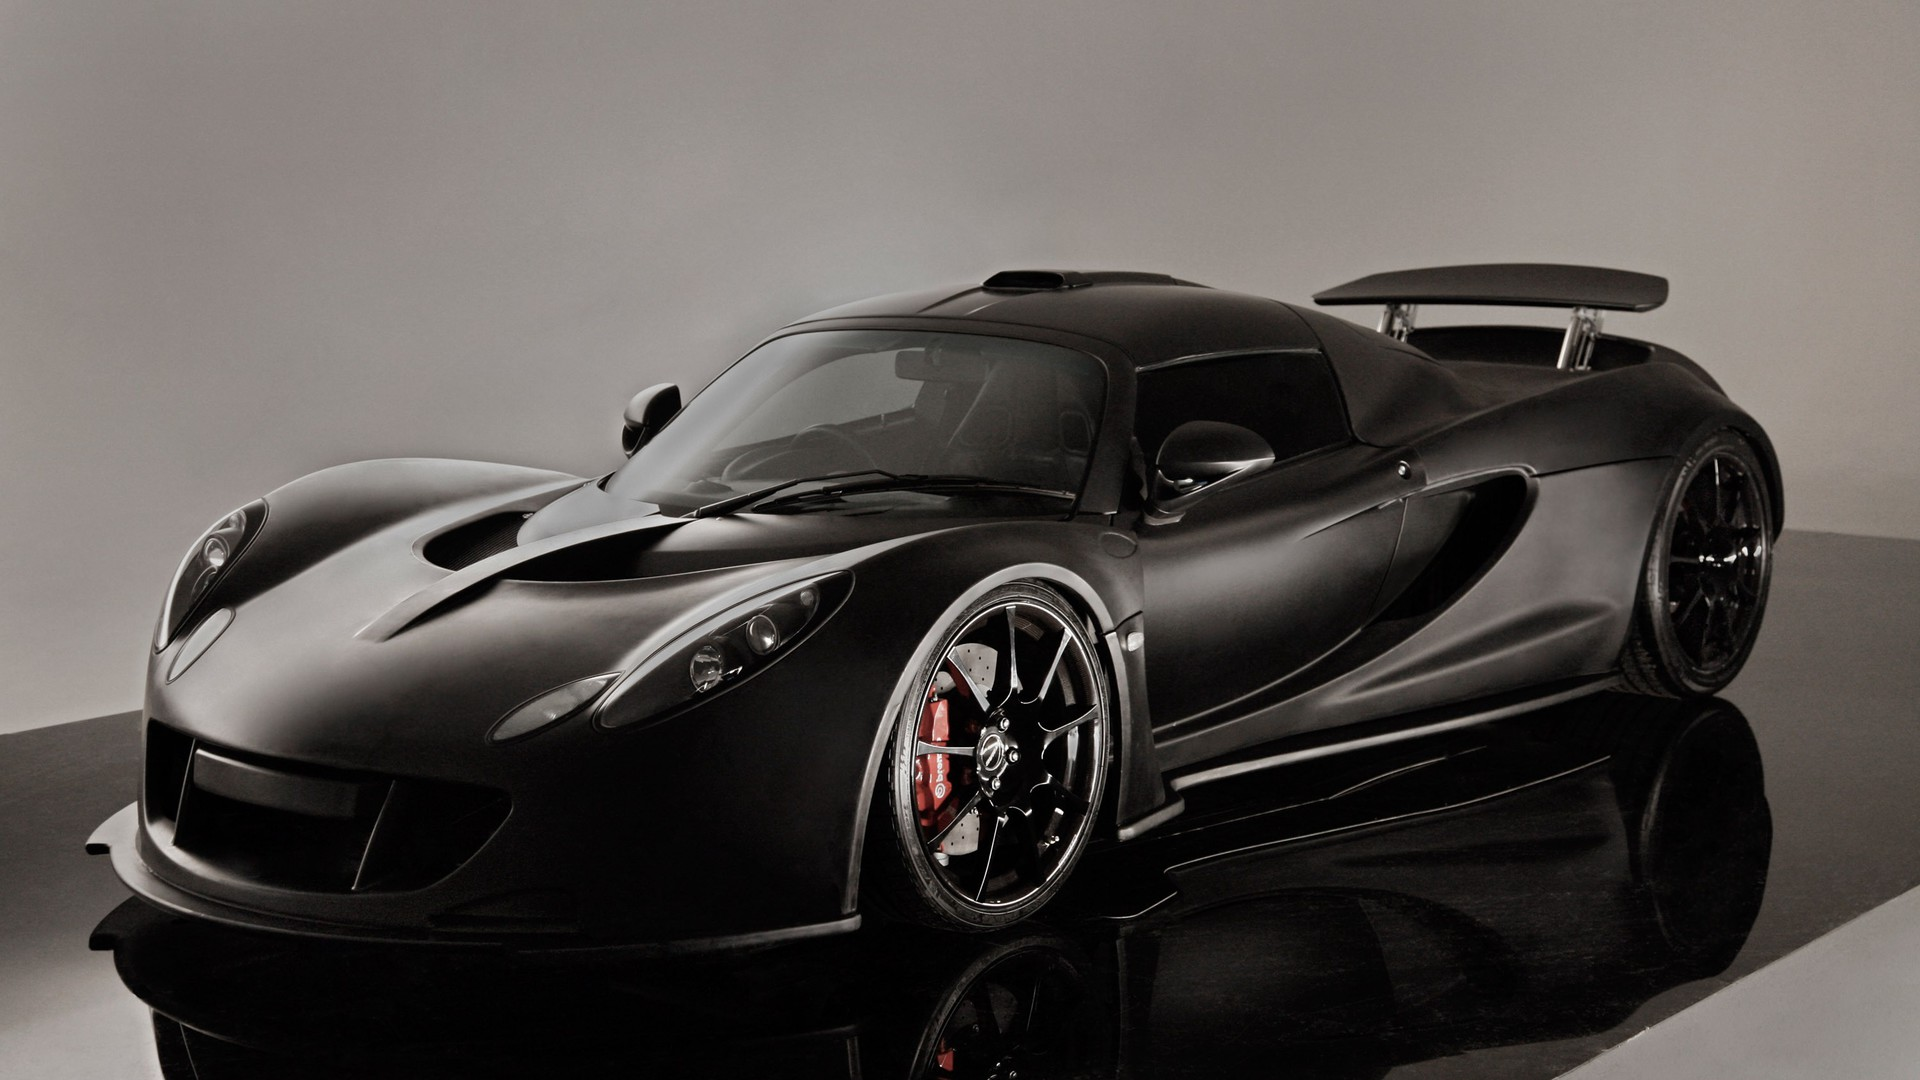 Autos Hennessey Gift Gt Super Wallpaper Allwallpaper In